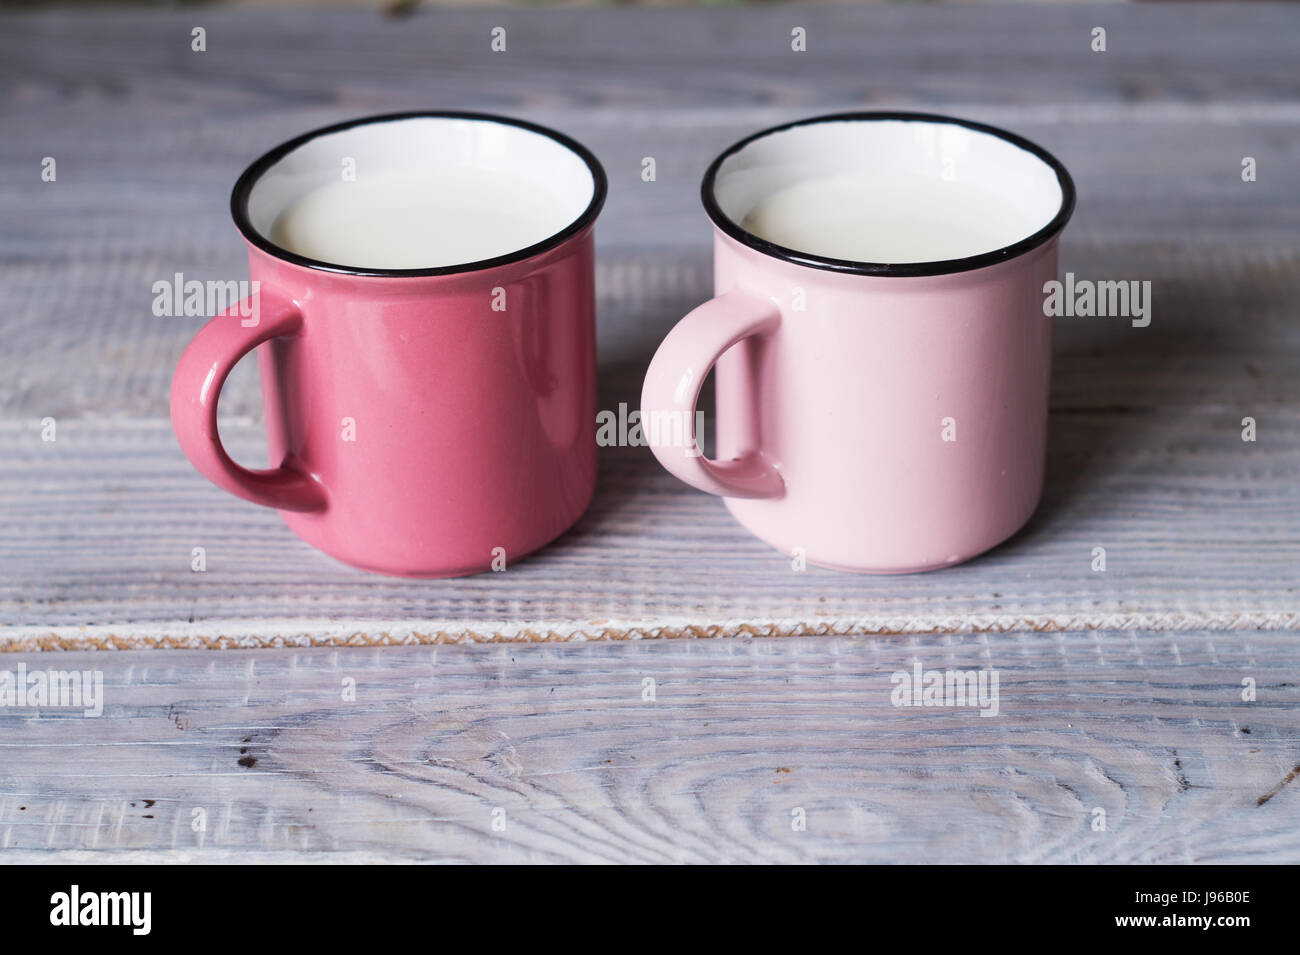 Two pink cups with milk on the white wooden table - Stock Image